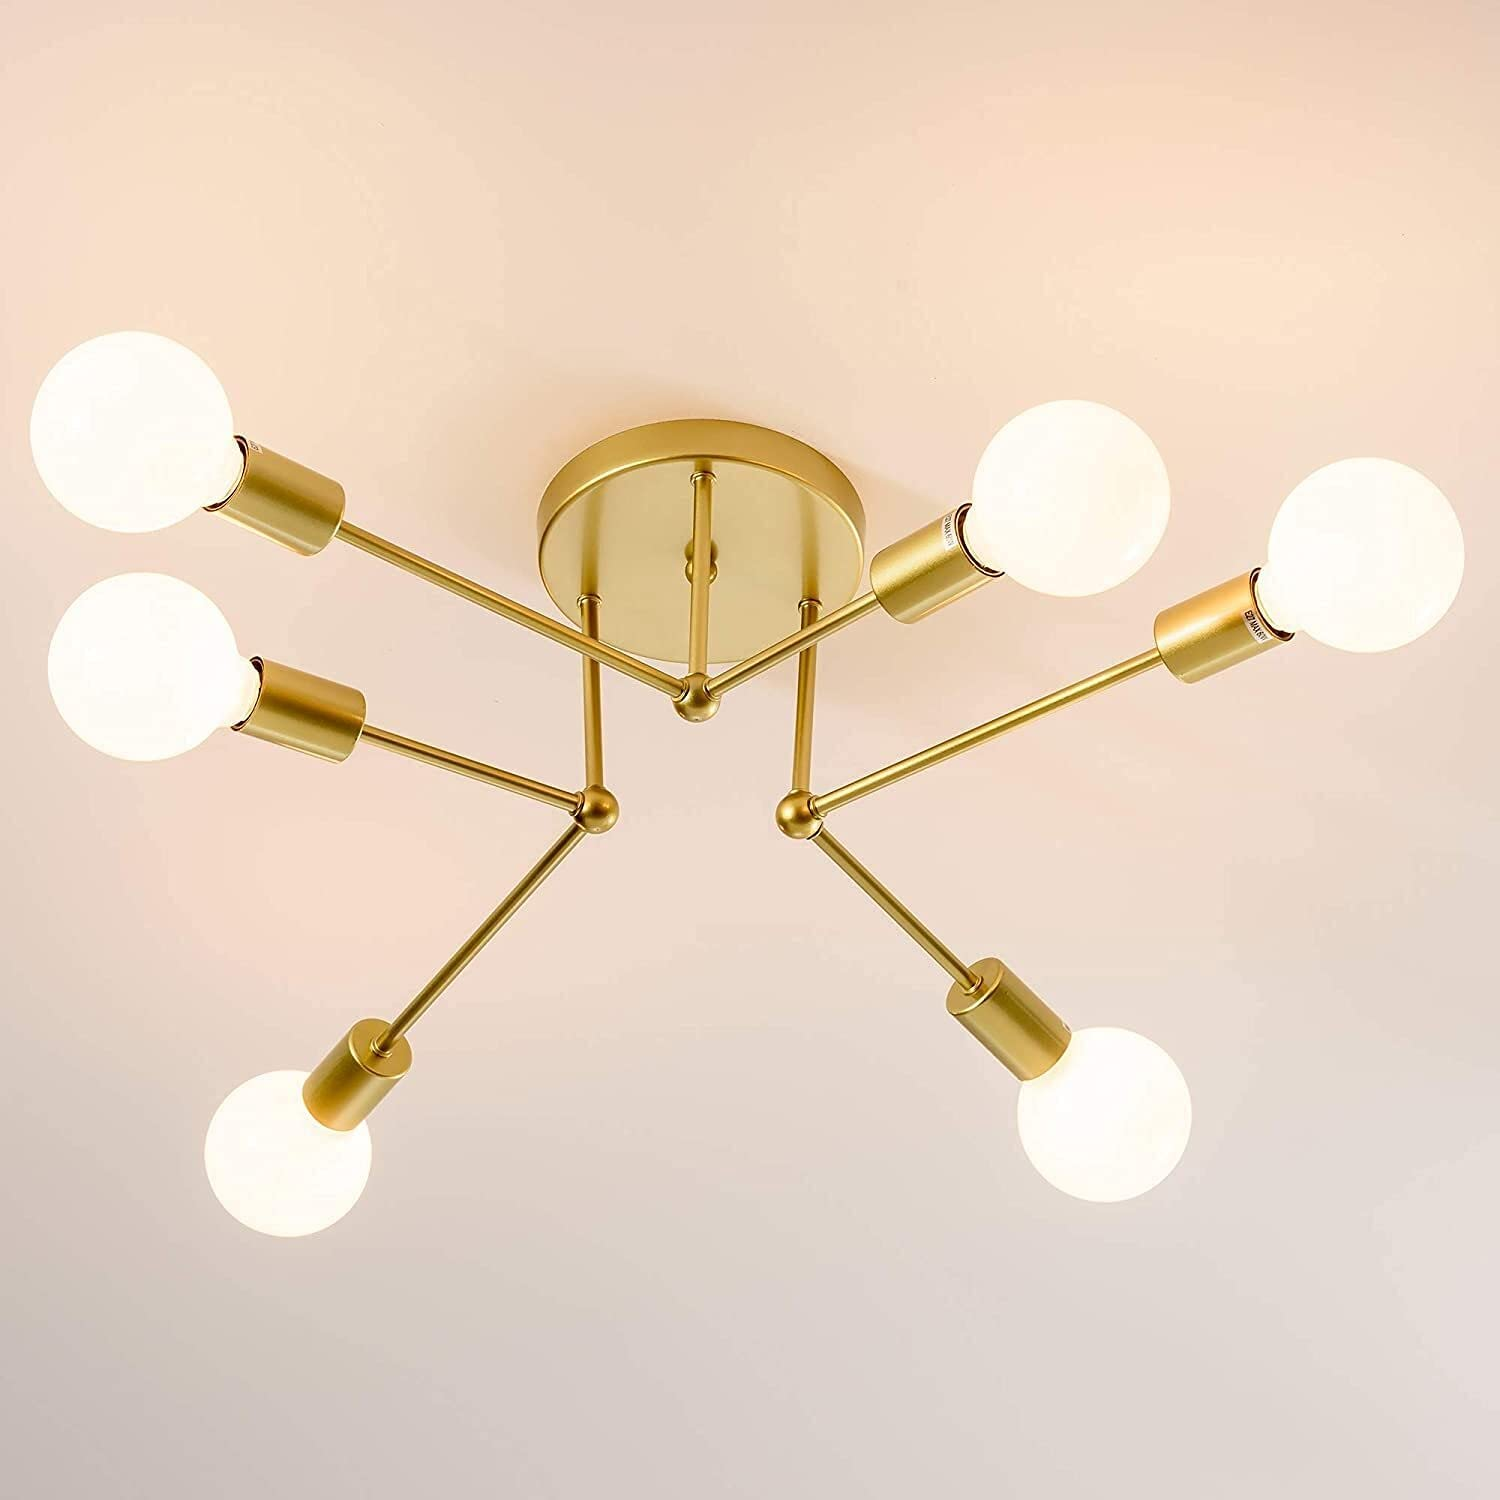 Chandelier Lighting Industrial Cash special price Modern SEAL limited product Ceiling Light Vintage Bla